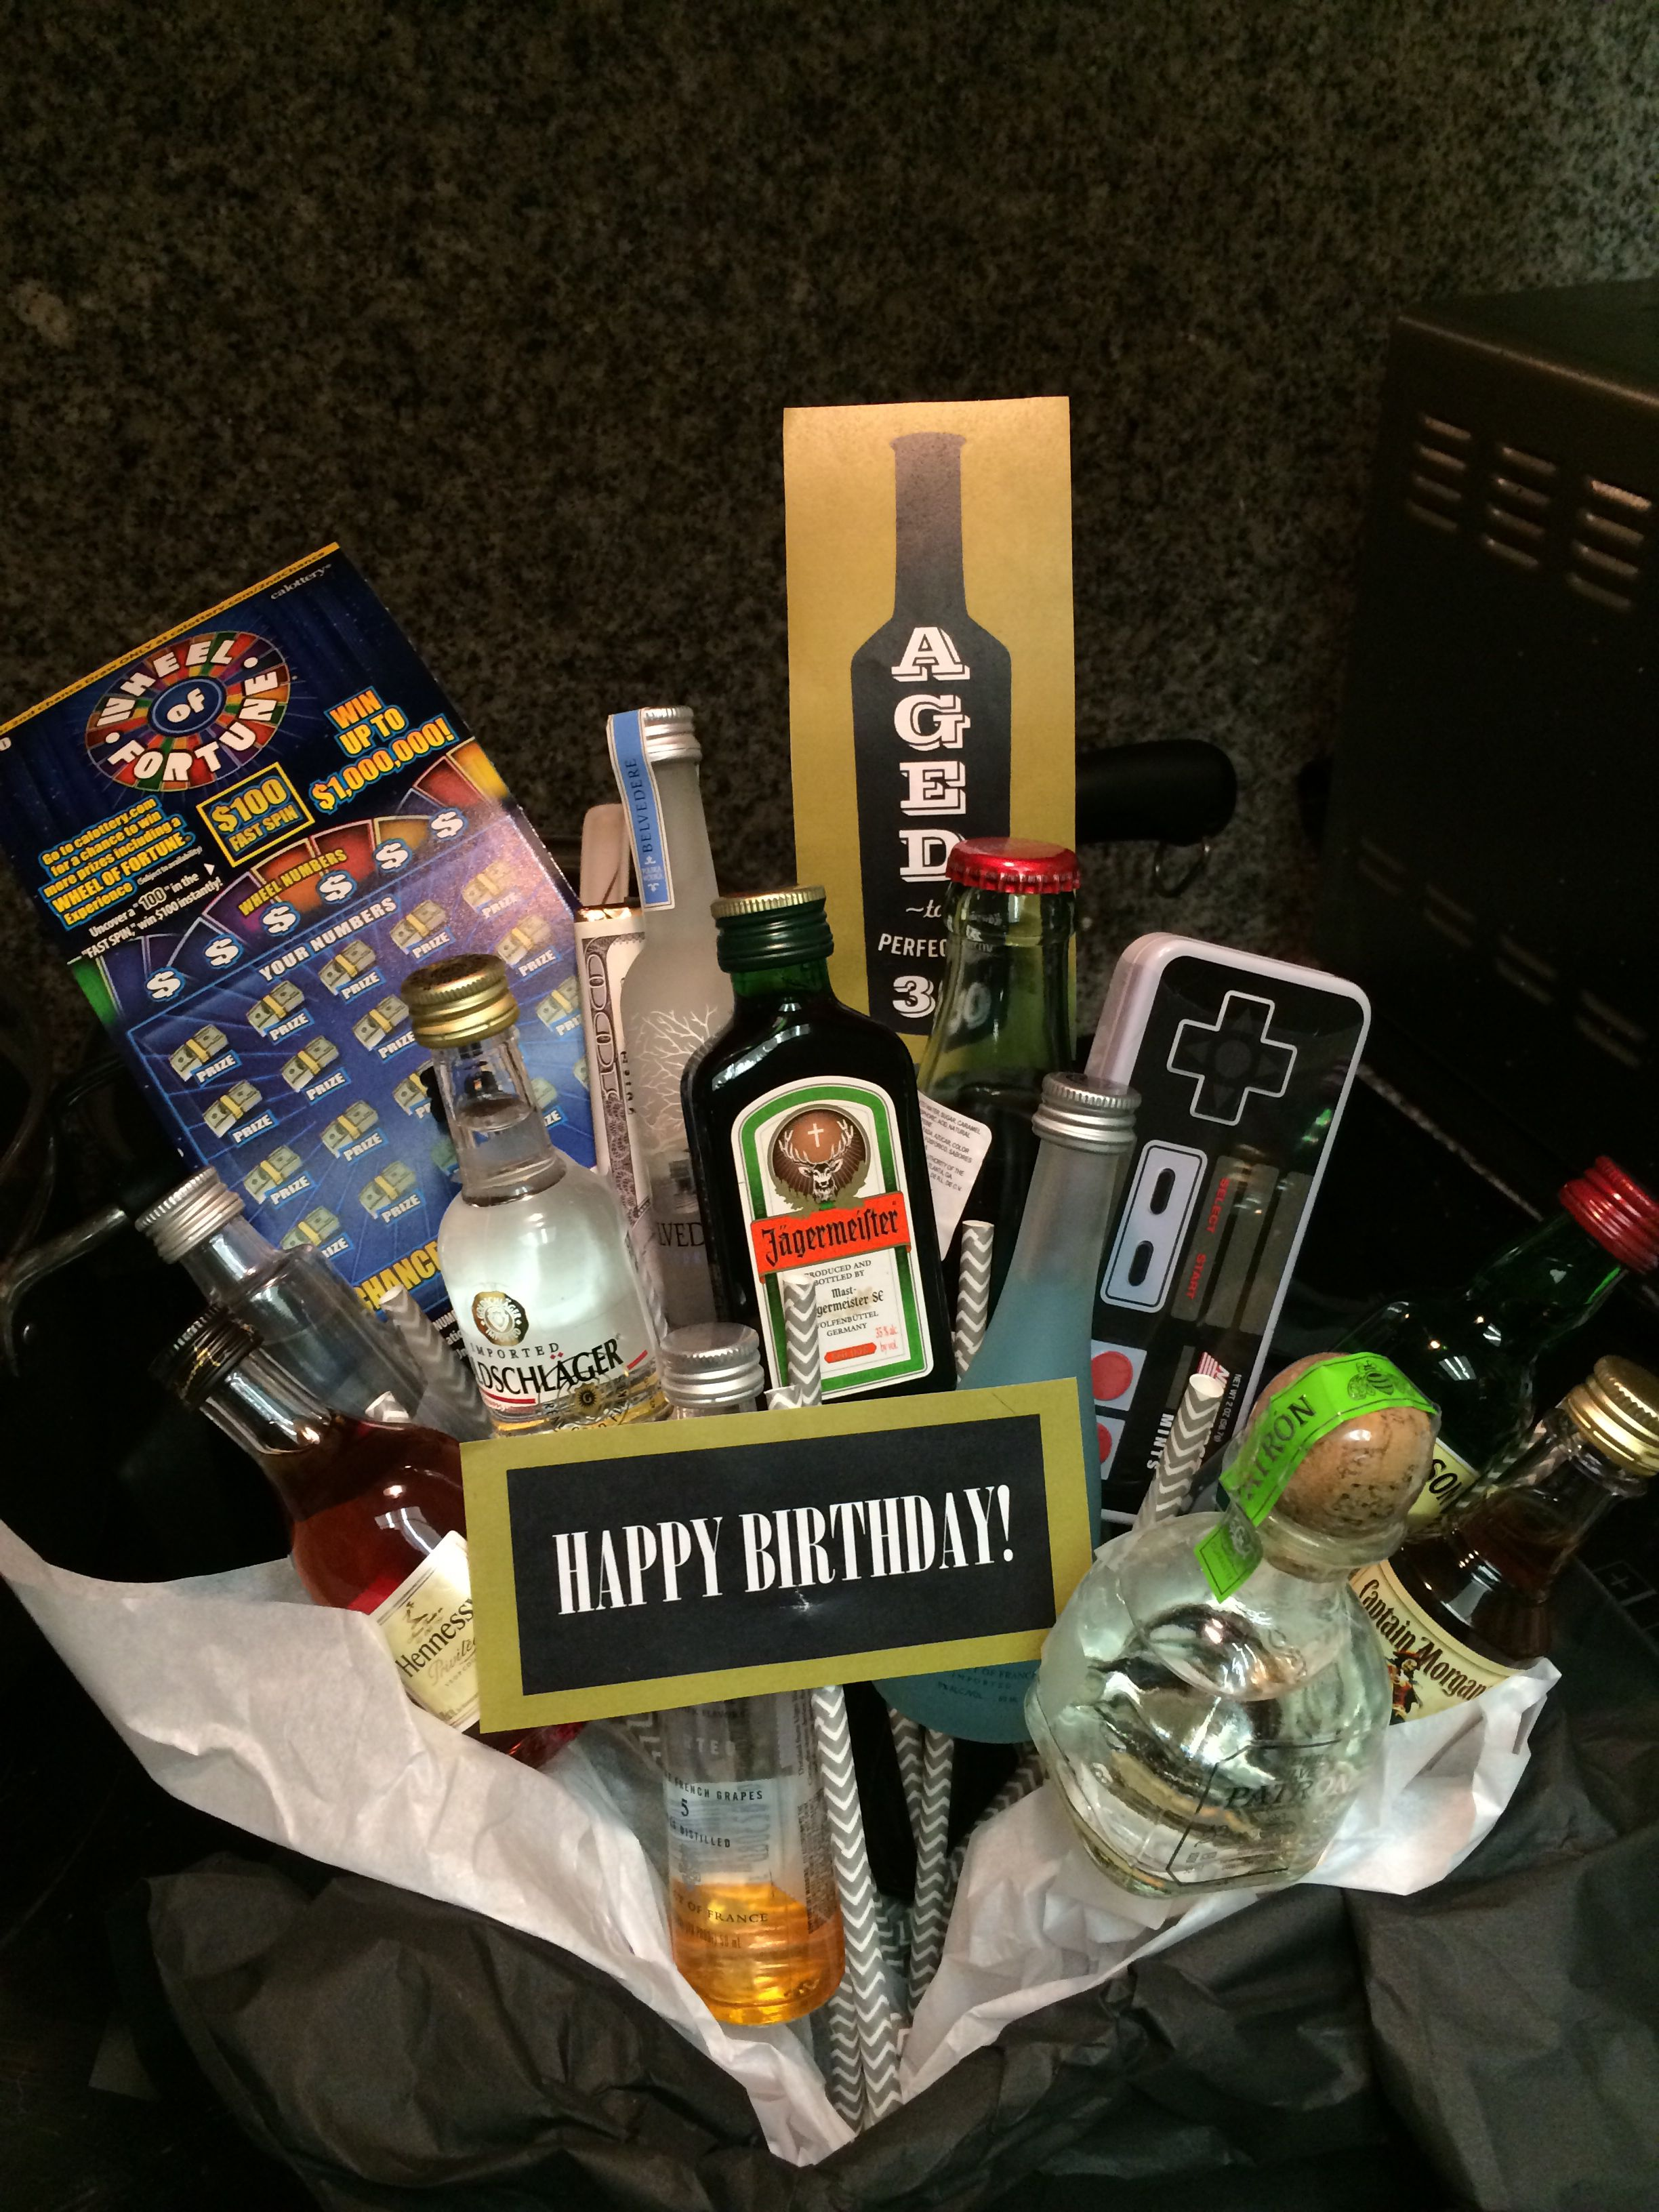 Made My Brother A Gift Basket Full Of Small Alcohol Bottles Scratchers And Candy For His